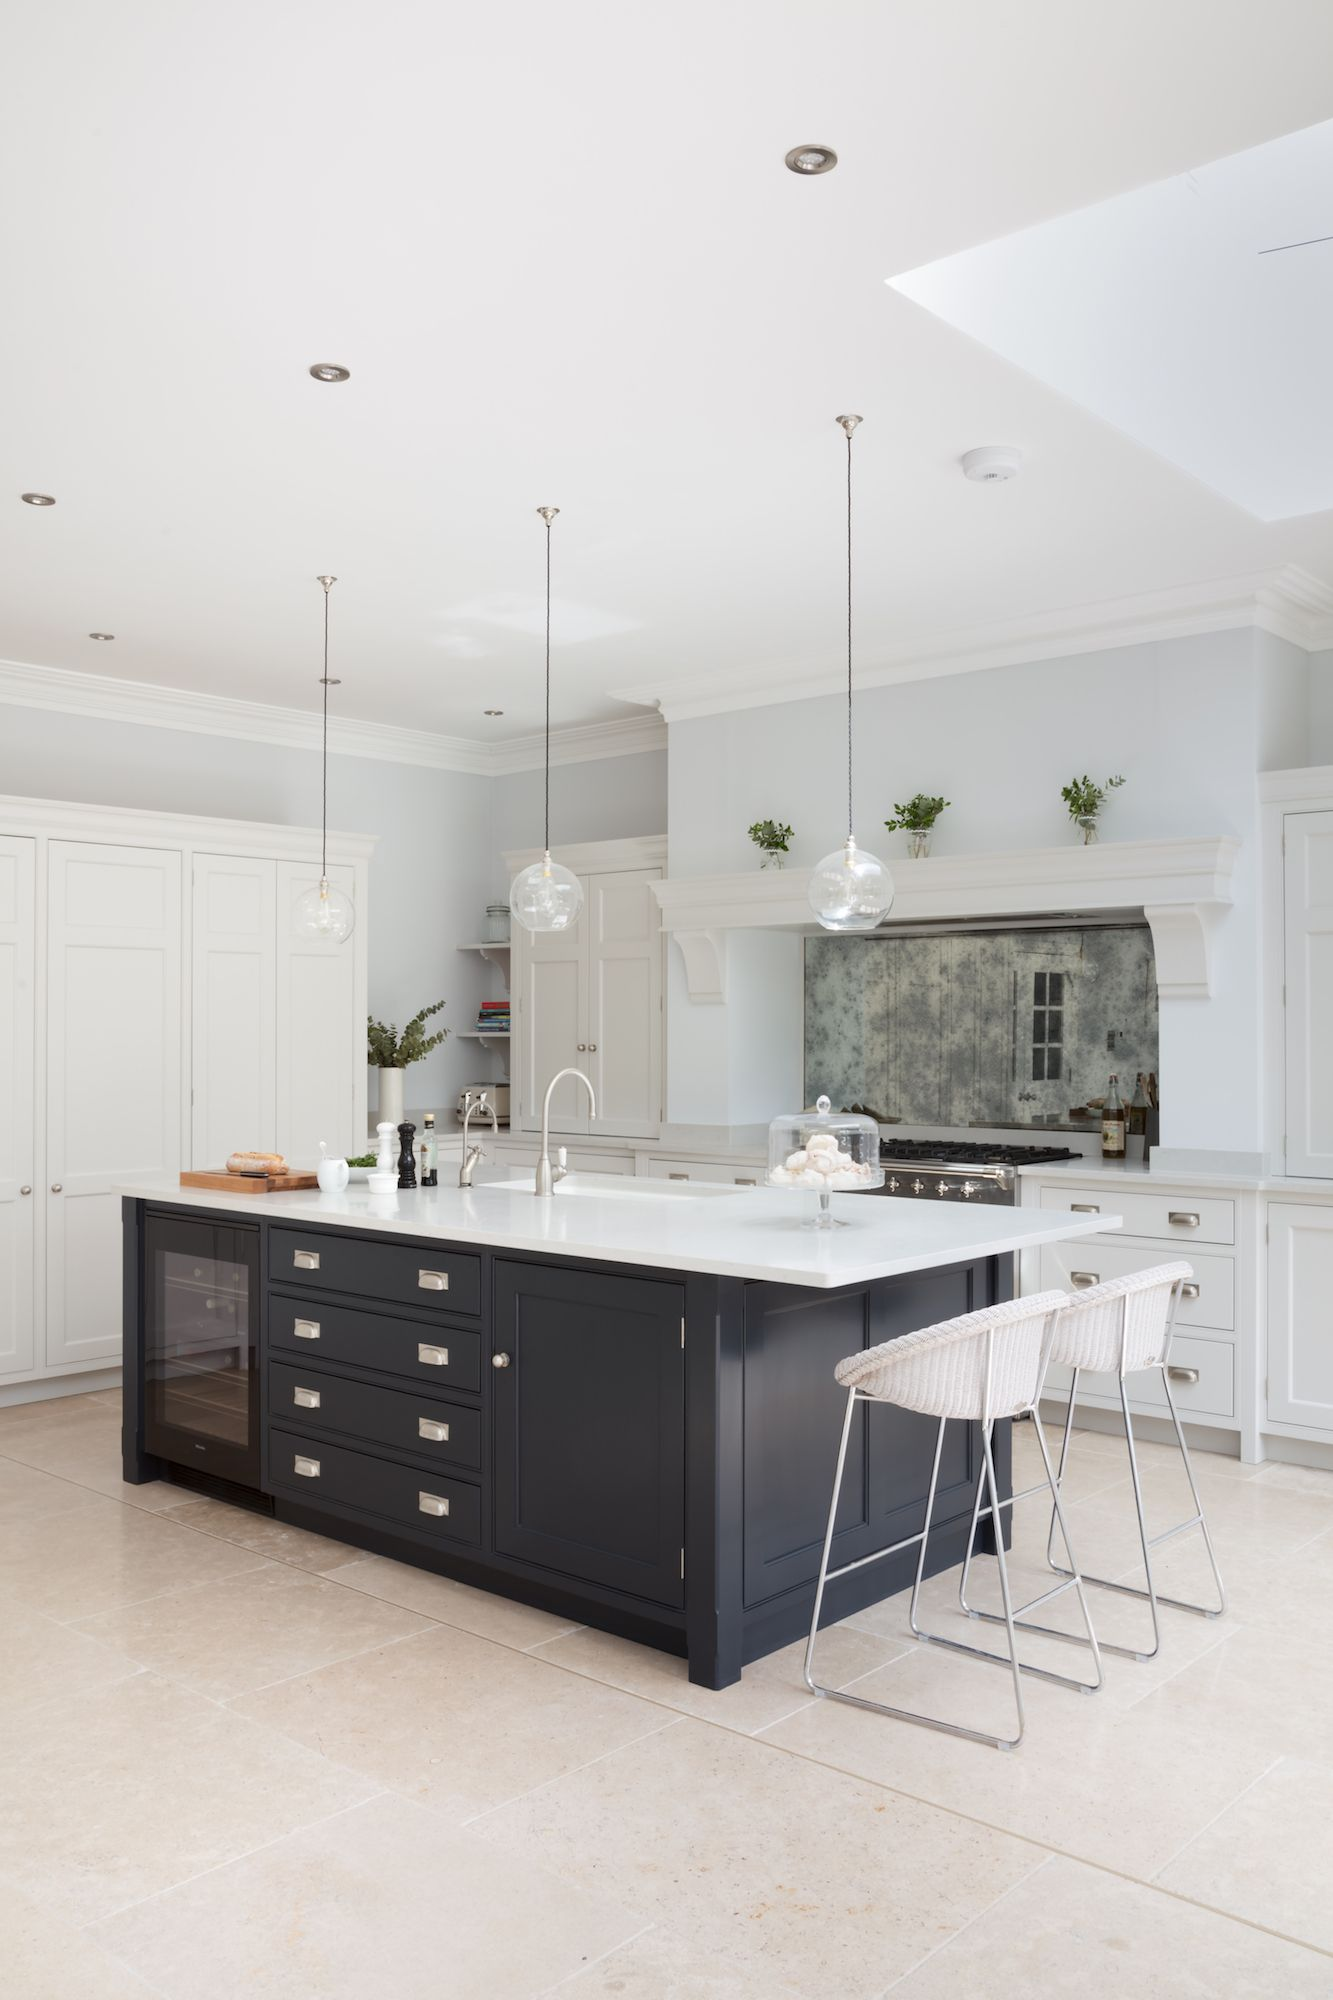 Luxury Kitchens Archives - Page 12 of 20 - Bigger Luxury | Kitchen ...